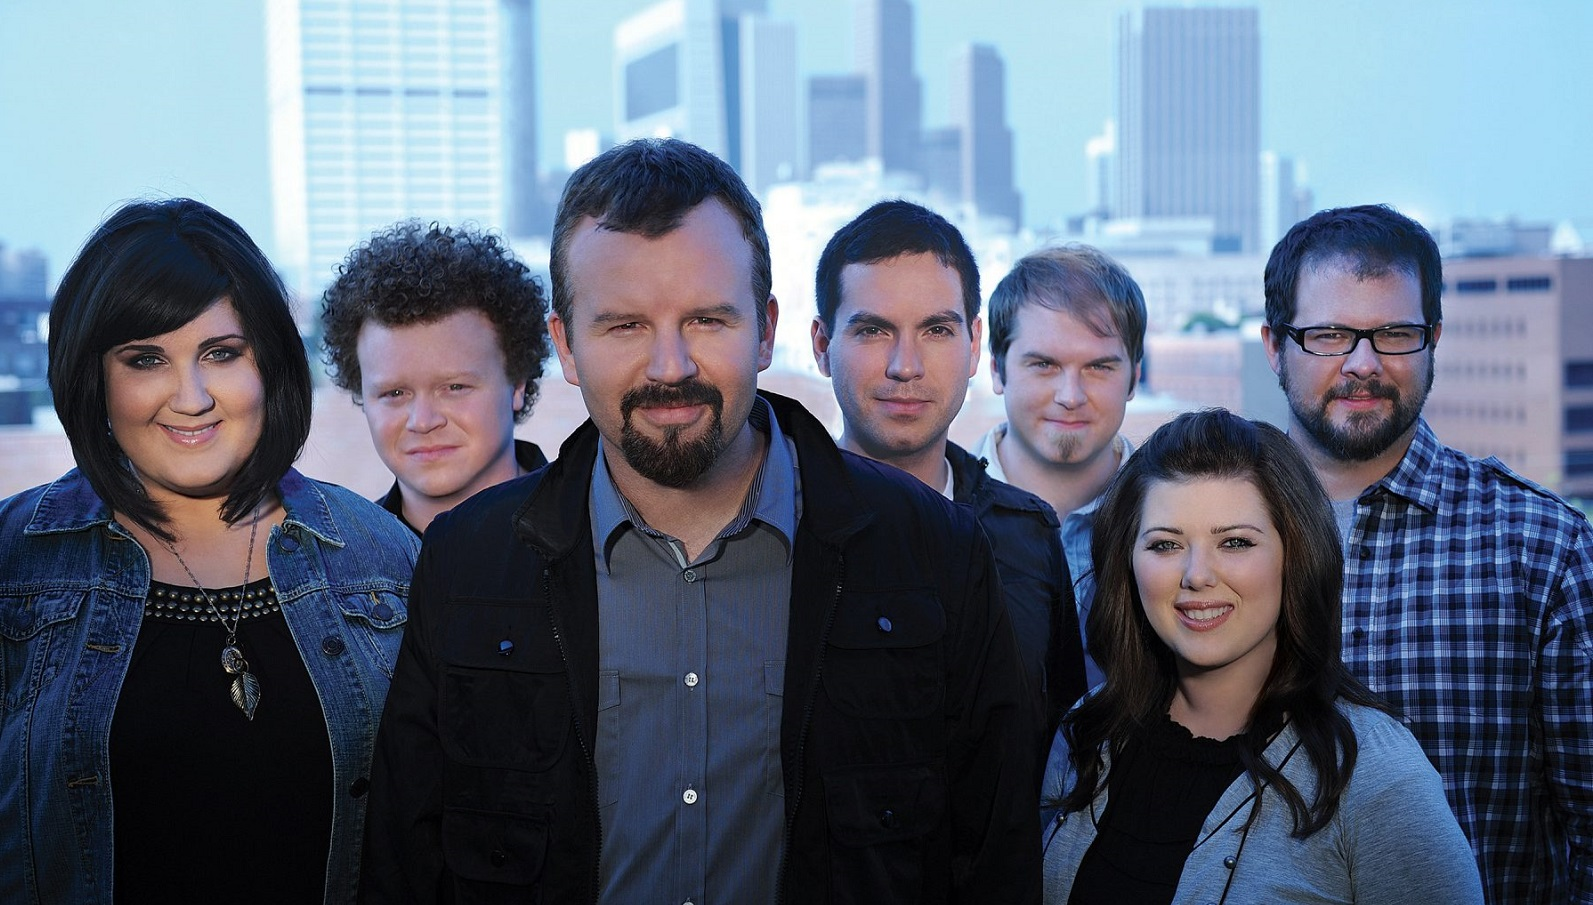 Multi-platinum Christian rock group Casting Crowns performed Friday in Darien Lake Performing Arts Center.